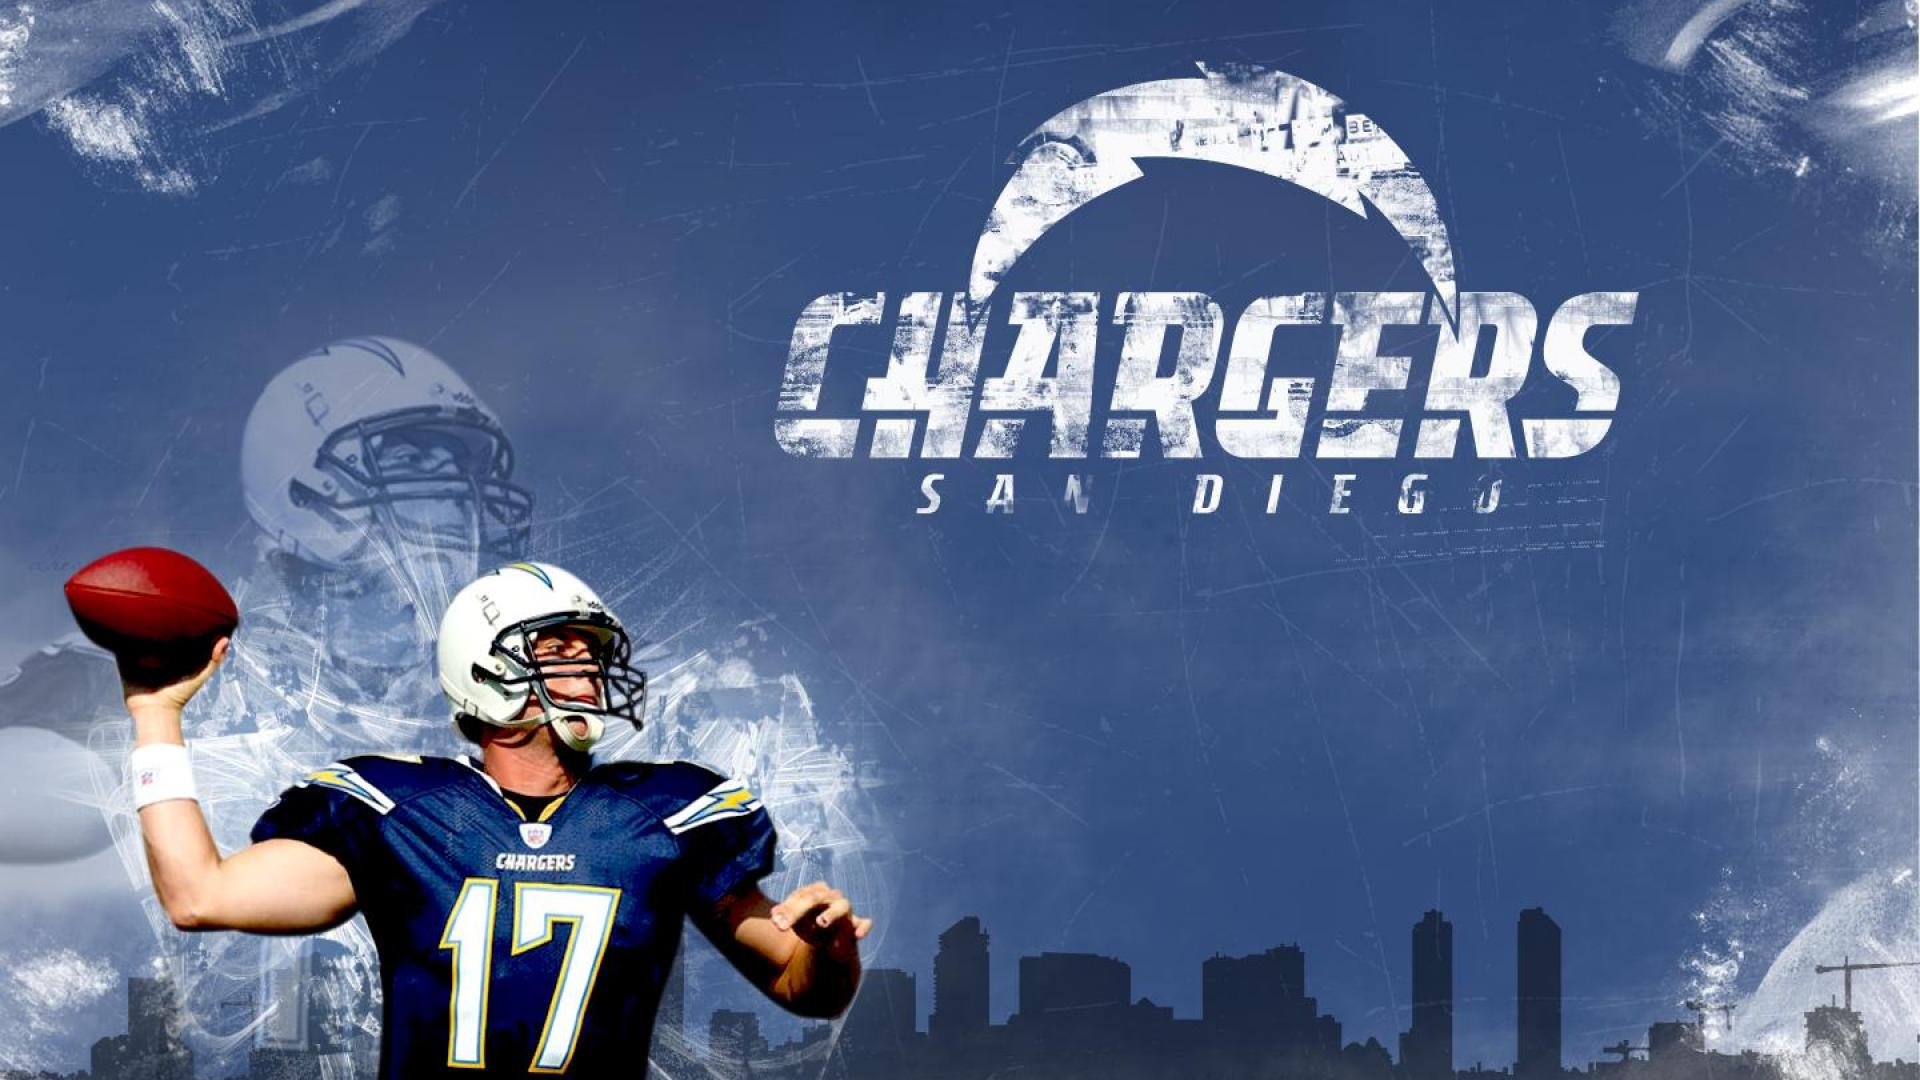 LA Chargers NFL HD Wallpapers New Tab Theme - Sports Fan Tab Qualcomm Stadium Chargers Wallpaper